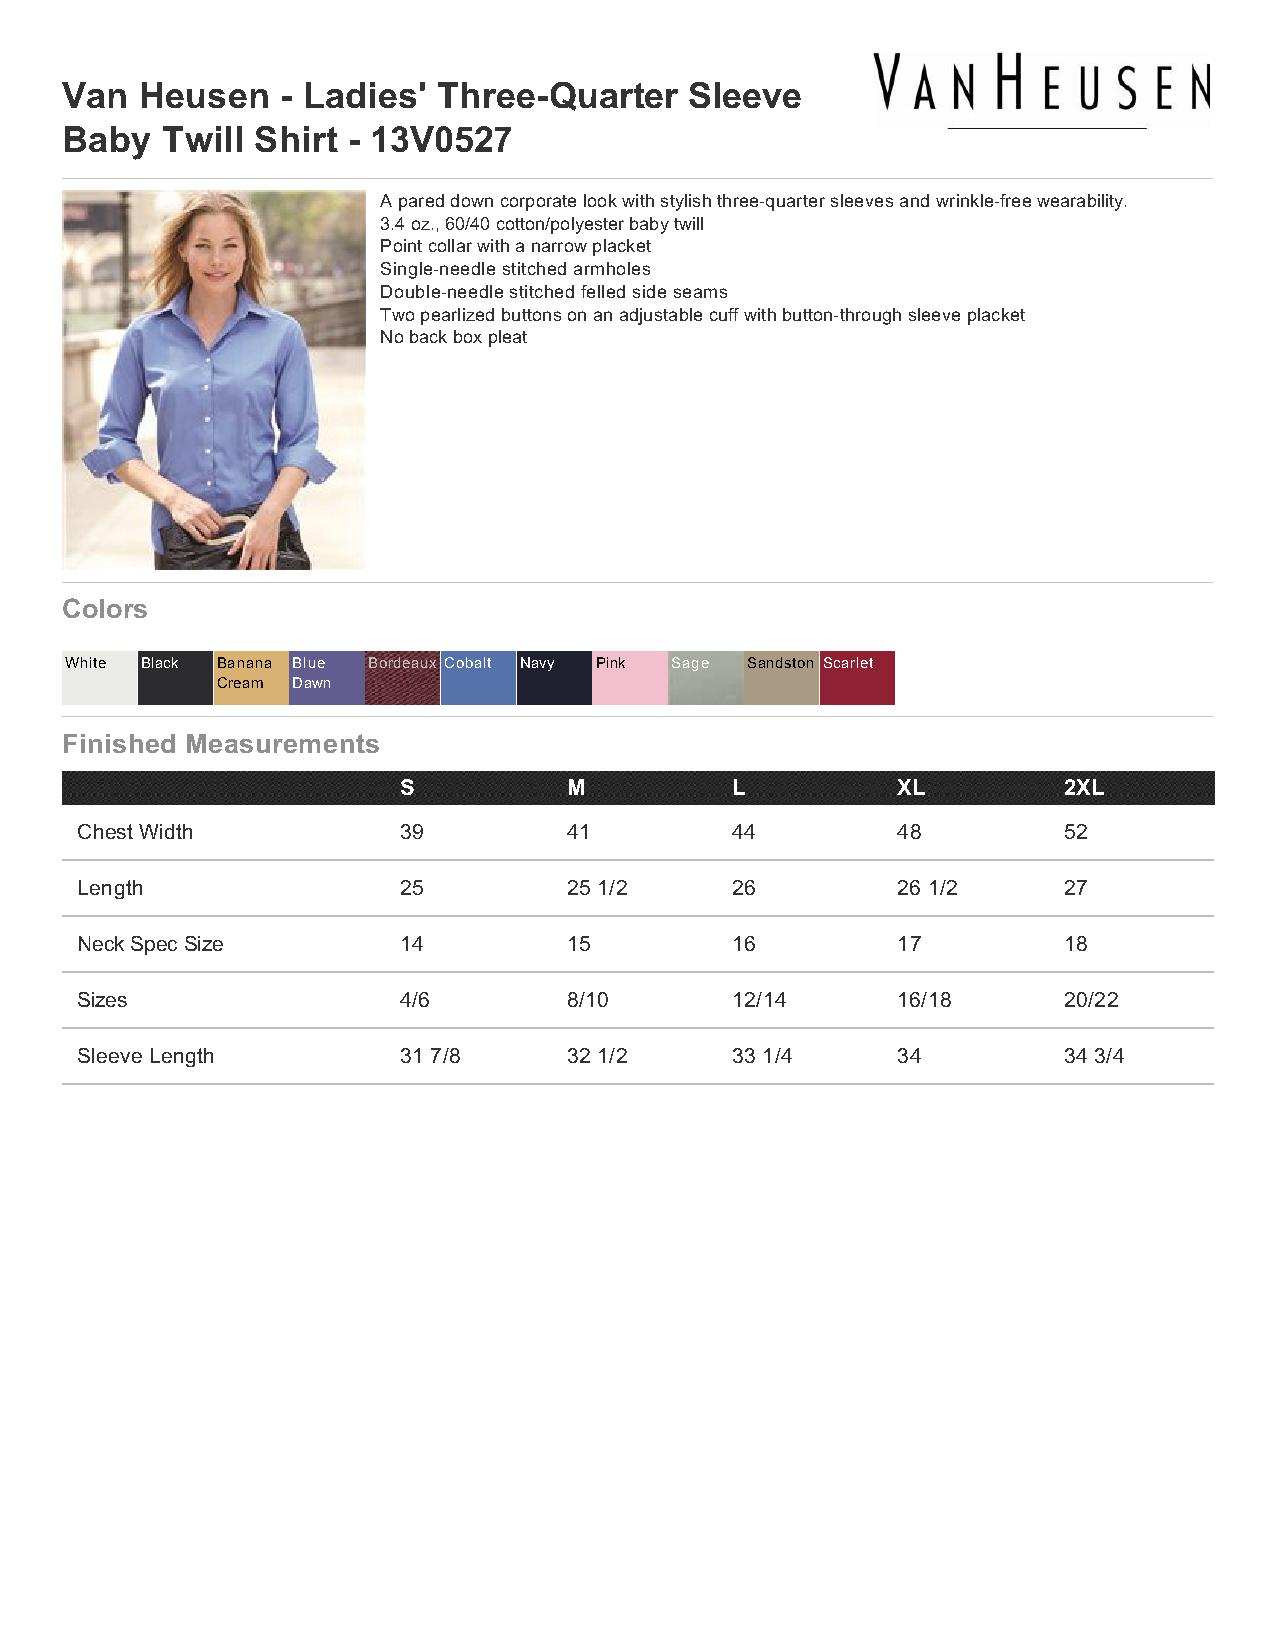 Van Heusen Dress Size Chart Van Heusen Size Chart How To